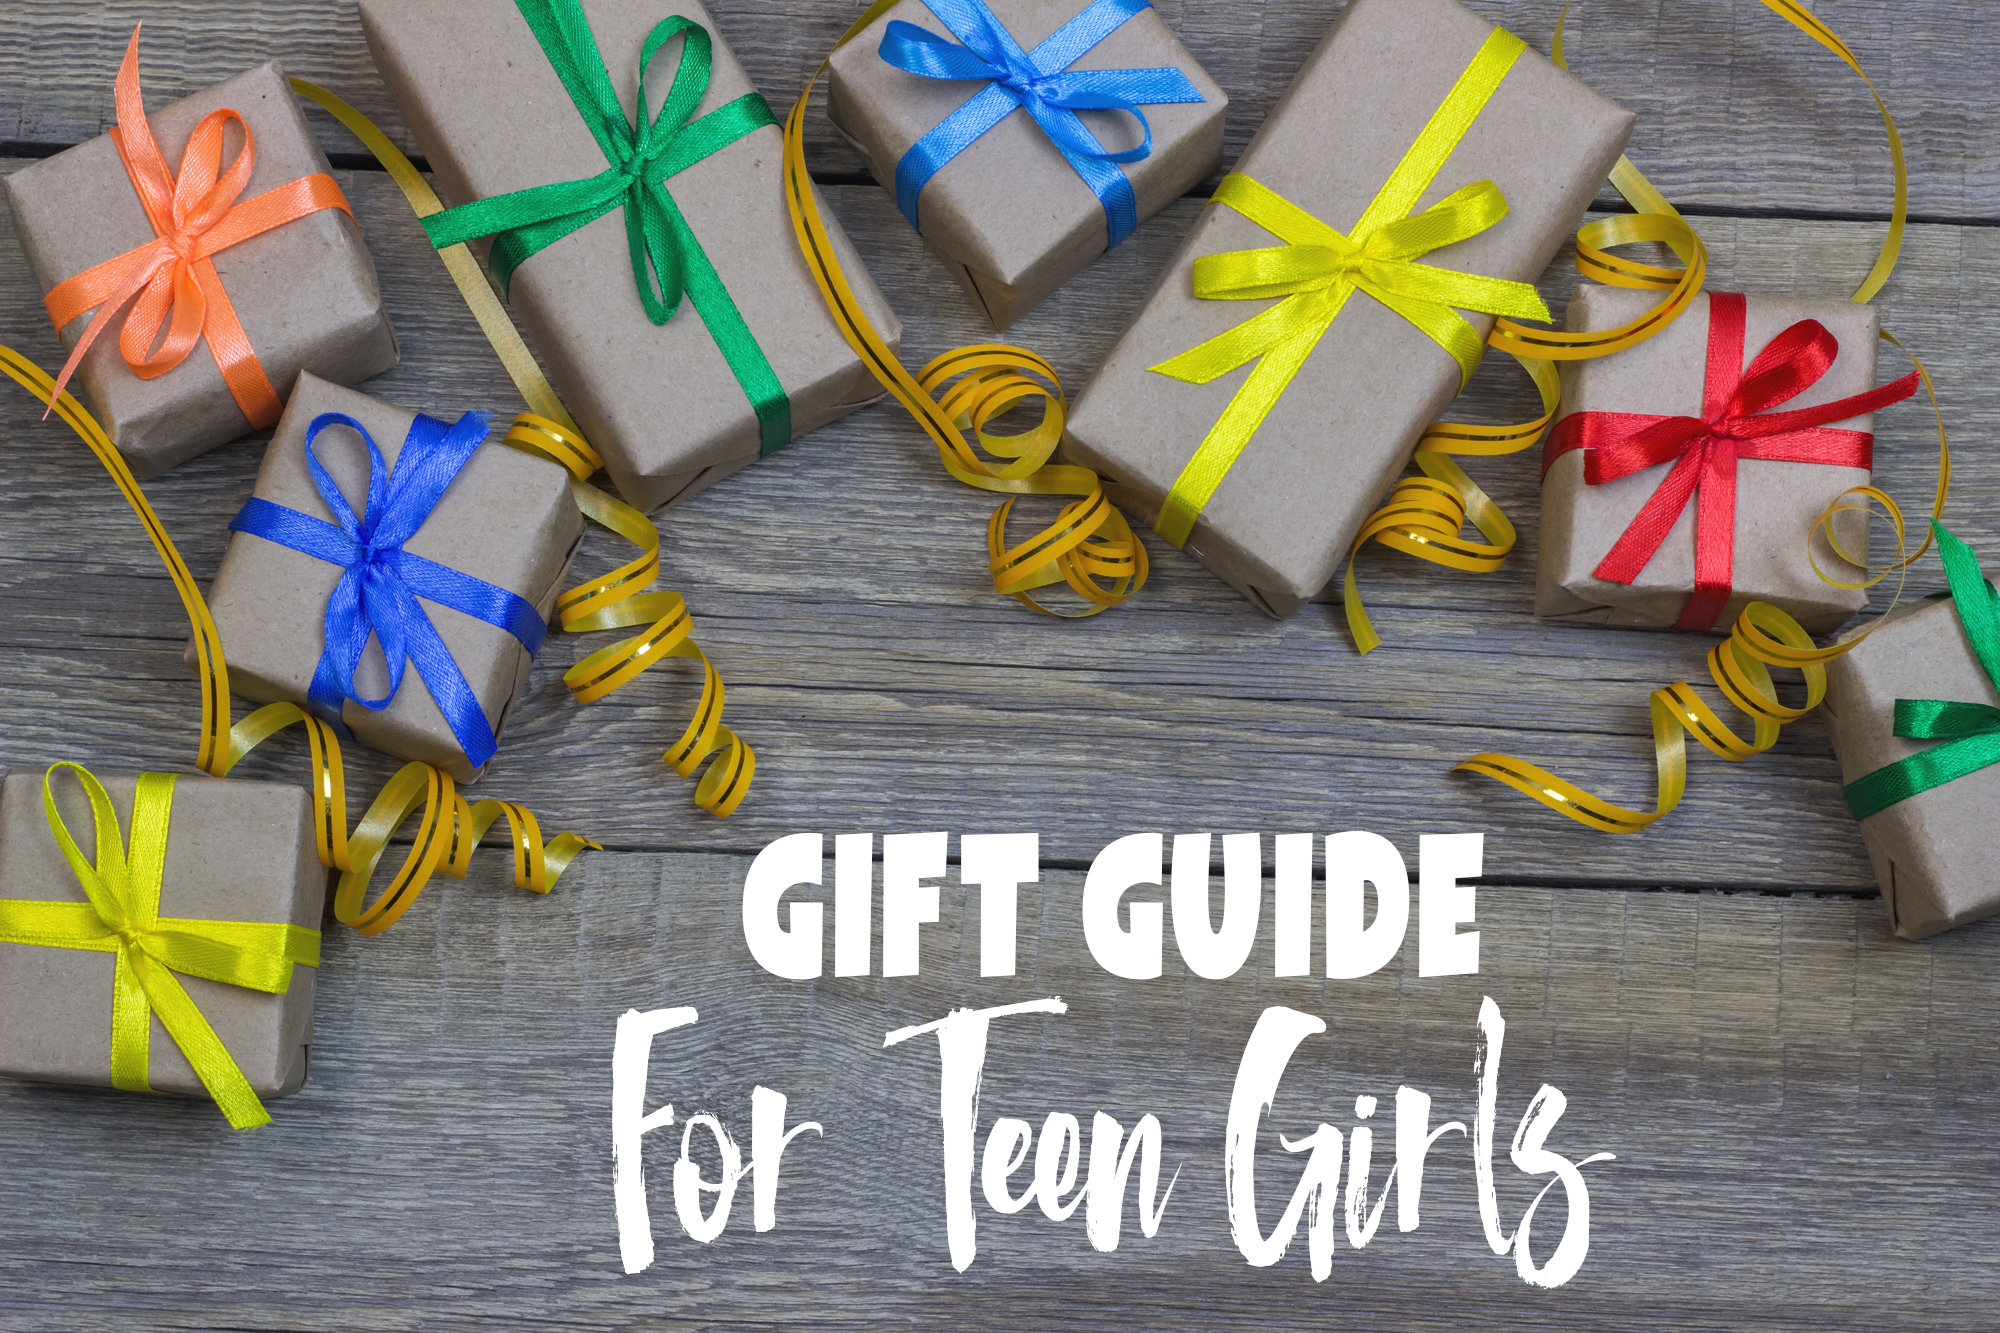 20 Cool Gift Ideas For Teen Girls 13 To 18 Years Old